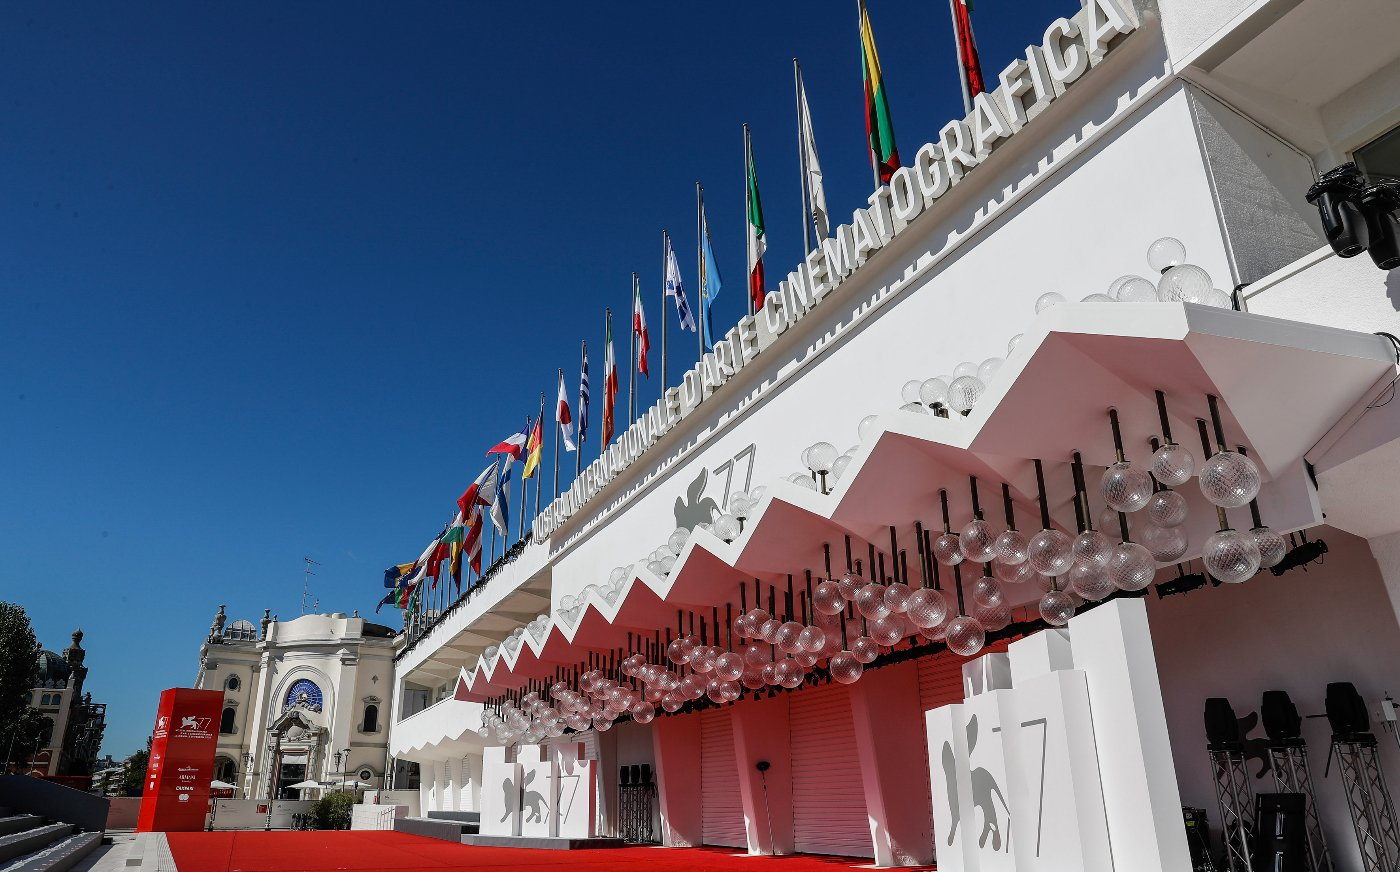 Cartier supports the Venice International Film Festival